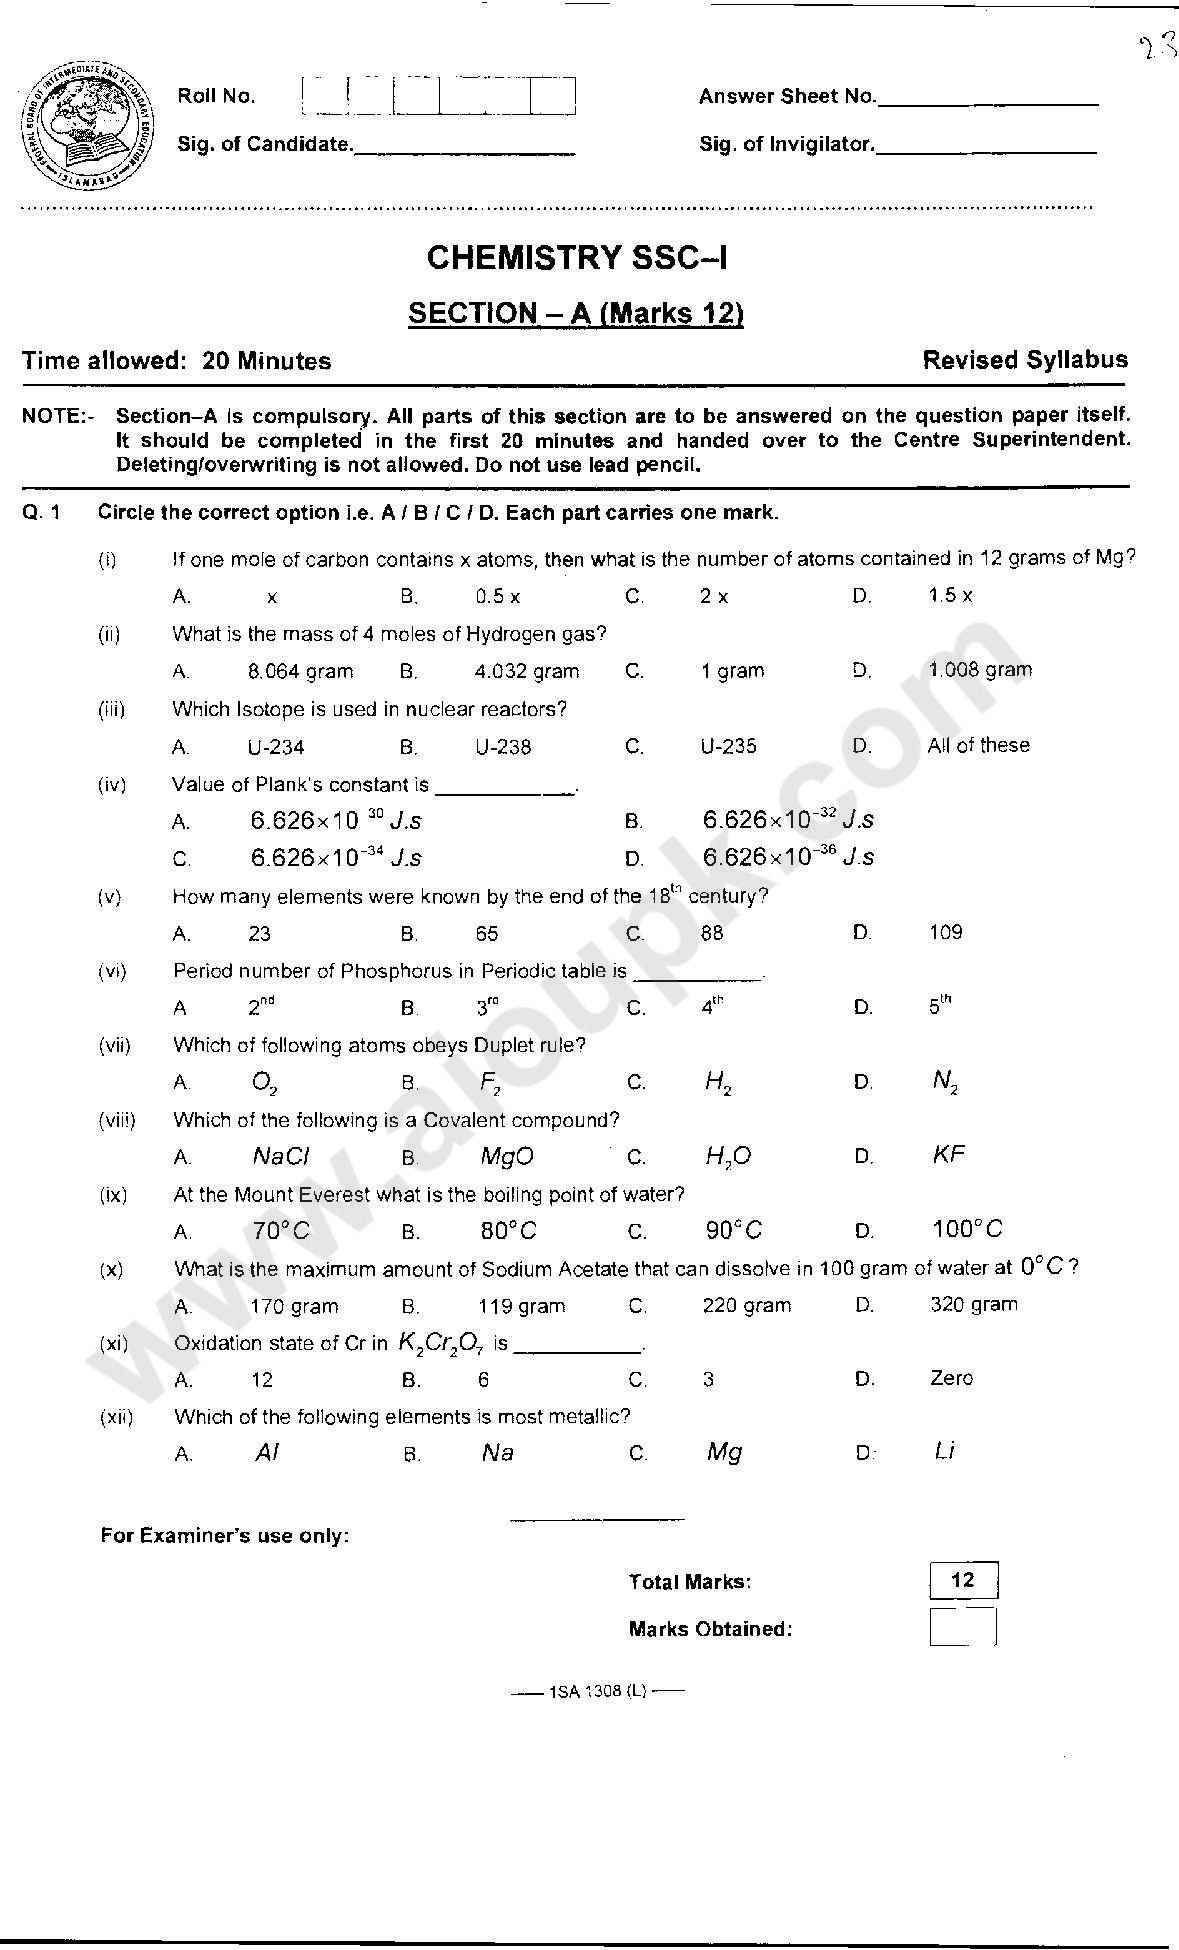 past papers of english intermediate part 2 Guesspapersnet - free notes, past year papers, guess papers, educational resources for students of pakistan and india others web directory of pakistan sir plz send me bsc part 2 english guess papers can any one send me the solved paper of board of gujranwala of biology intermediate part 1 and 2 both.